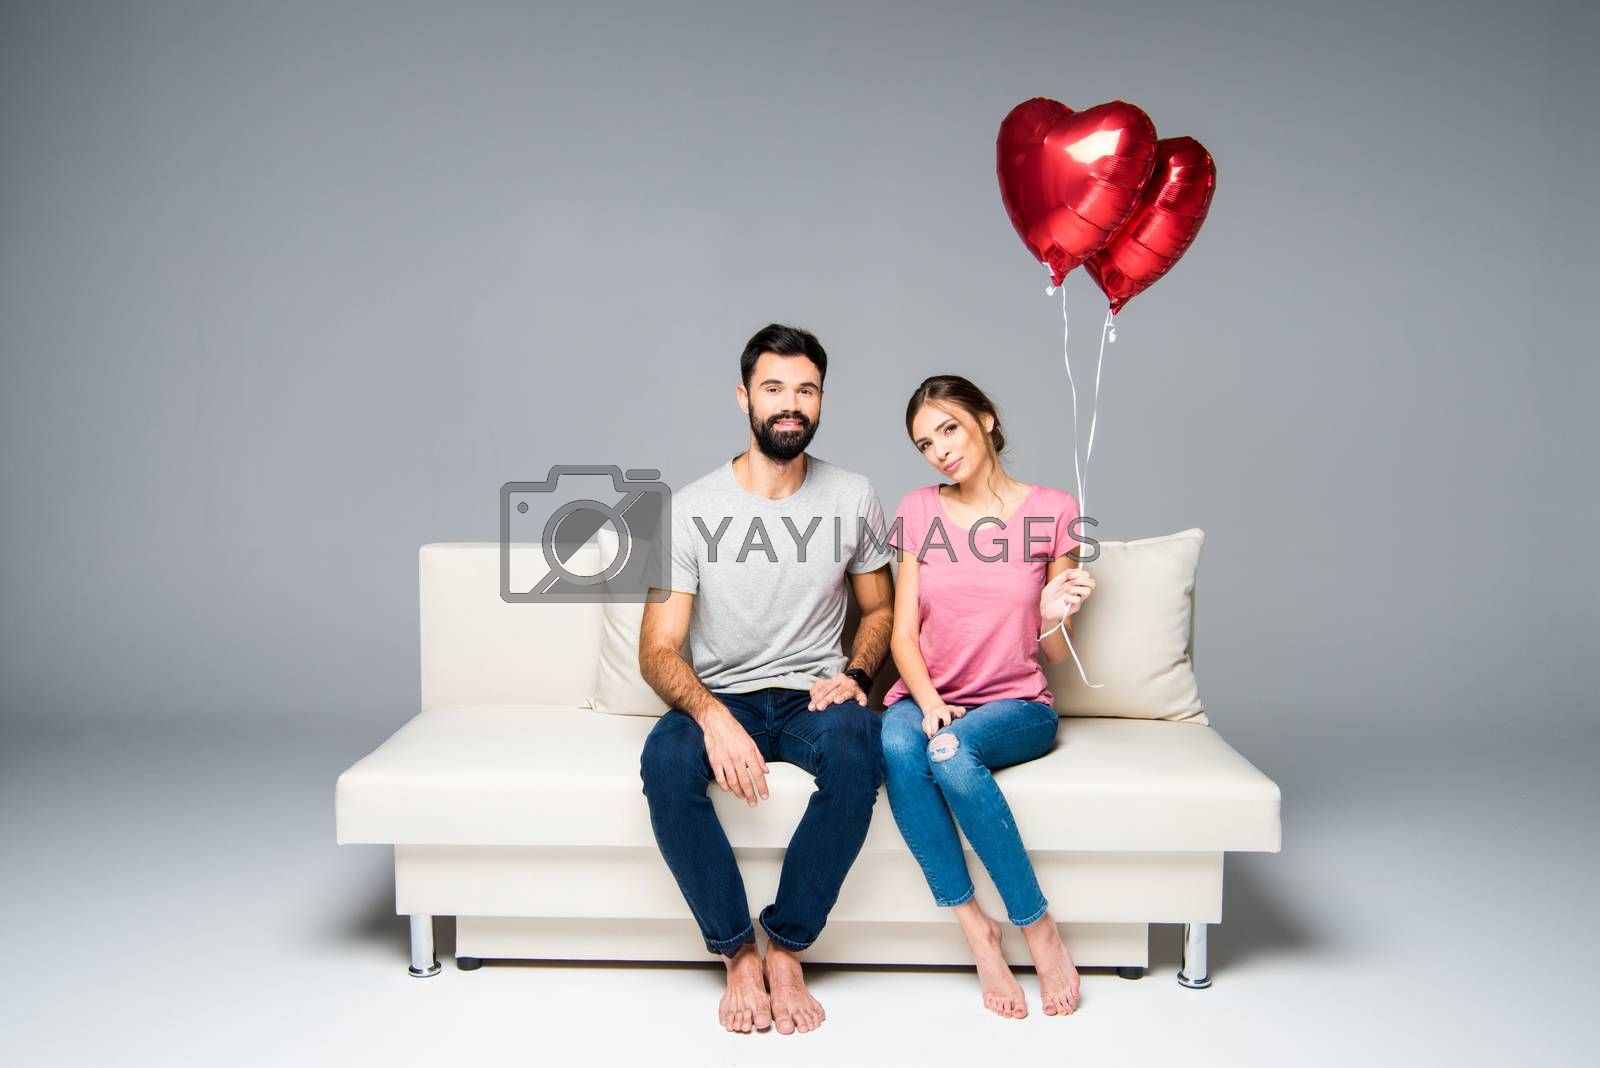 Couple sitting on white couch with red heart-shaped balloons